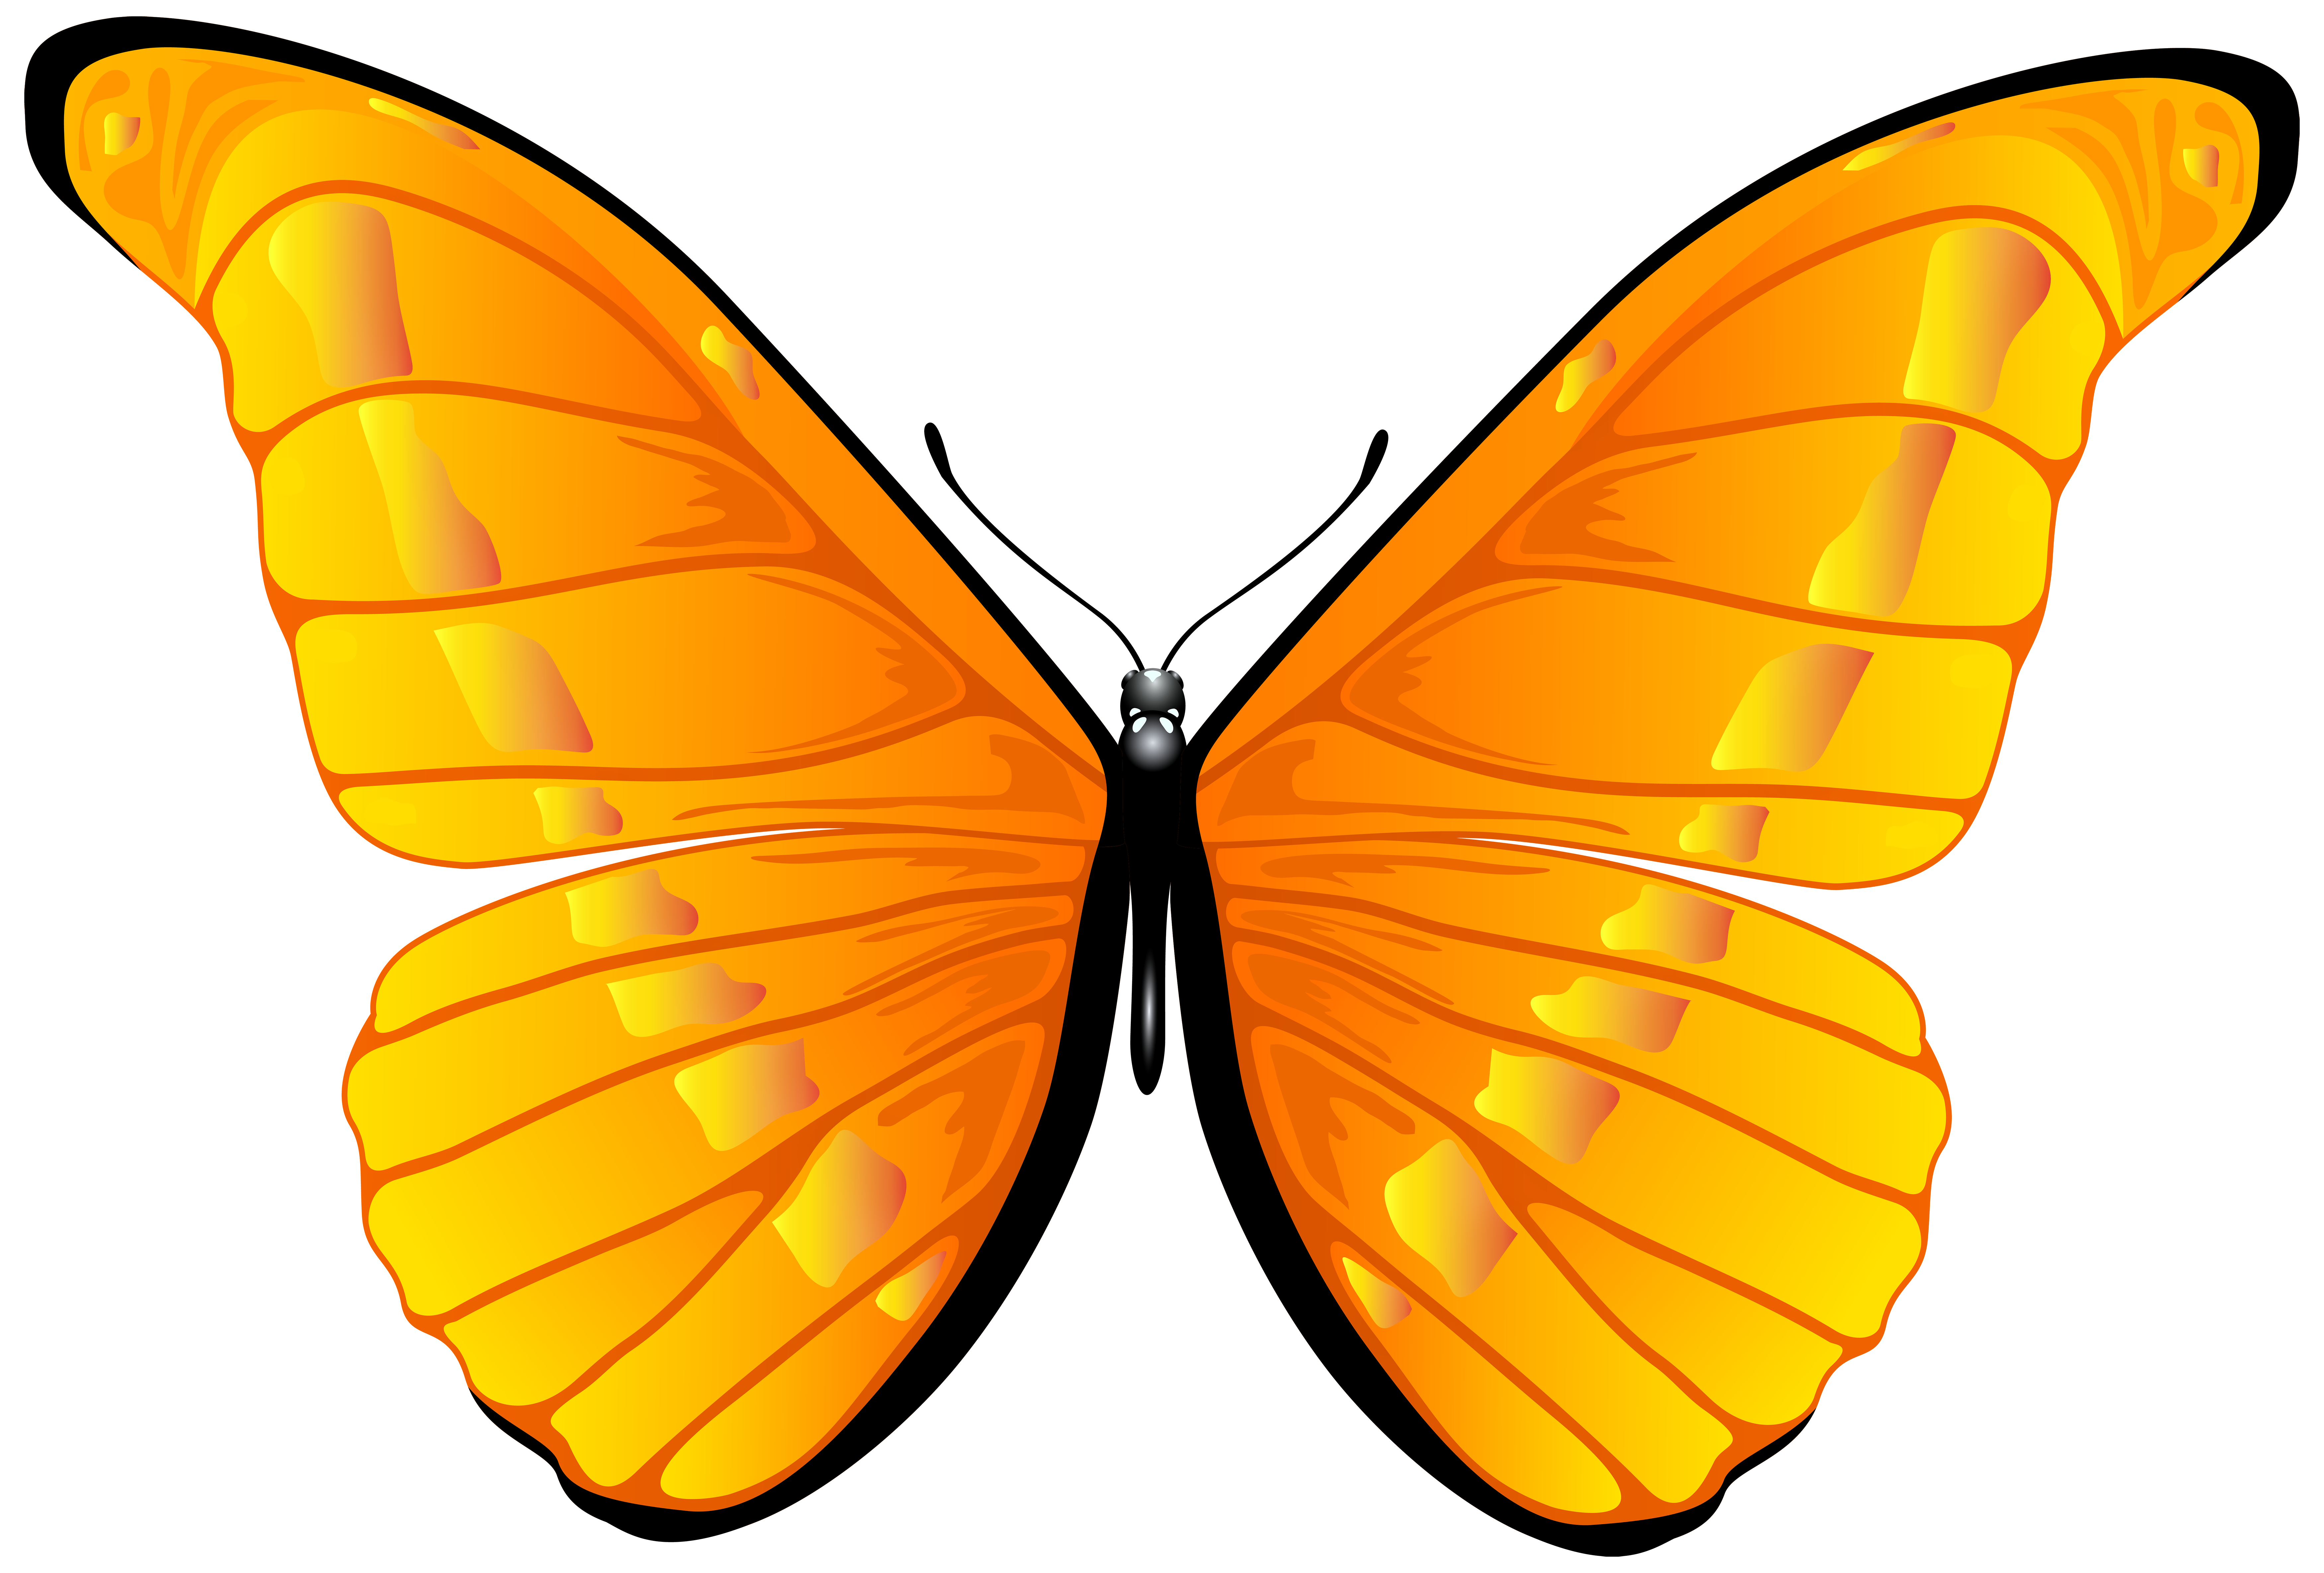 Free clipart butterfly images image freeuse Orange Butterfly PNG Clip Art Image | Gallery Yopriceville - High ... image freeuse